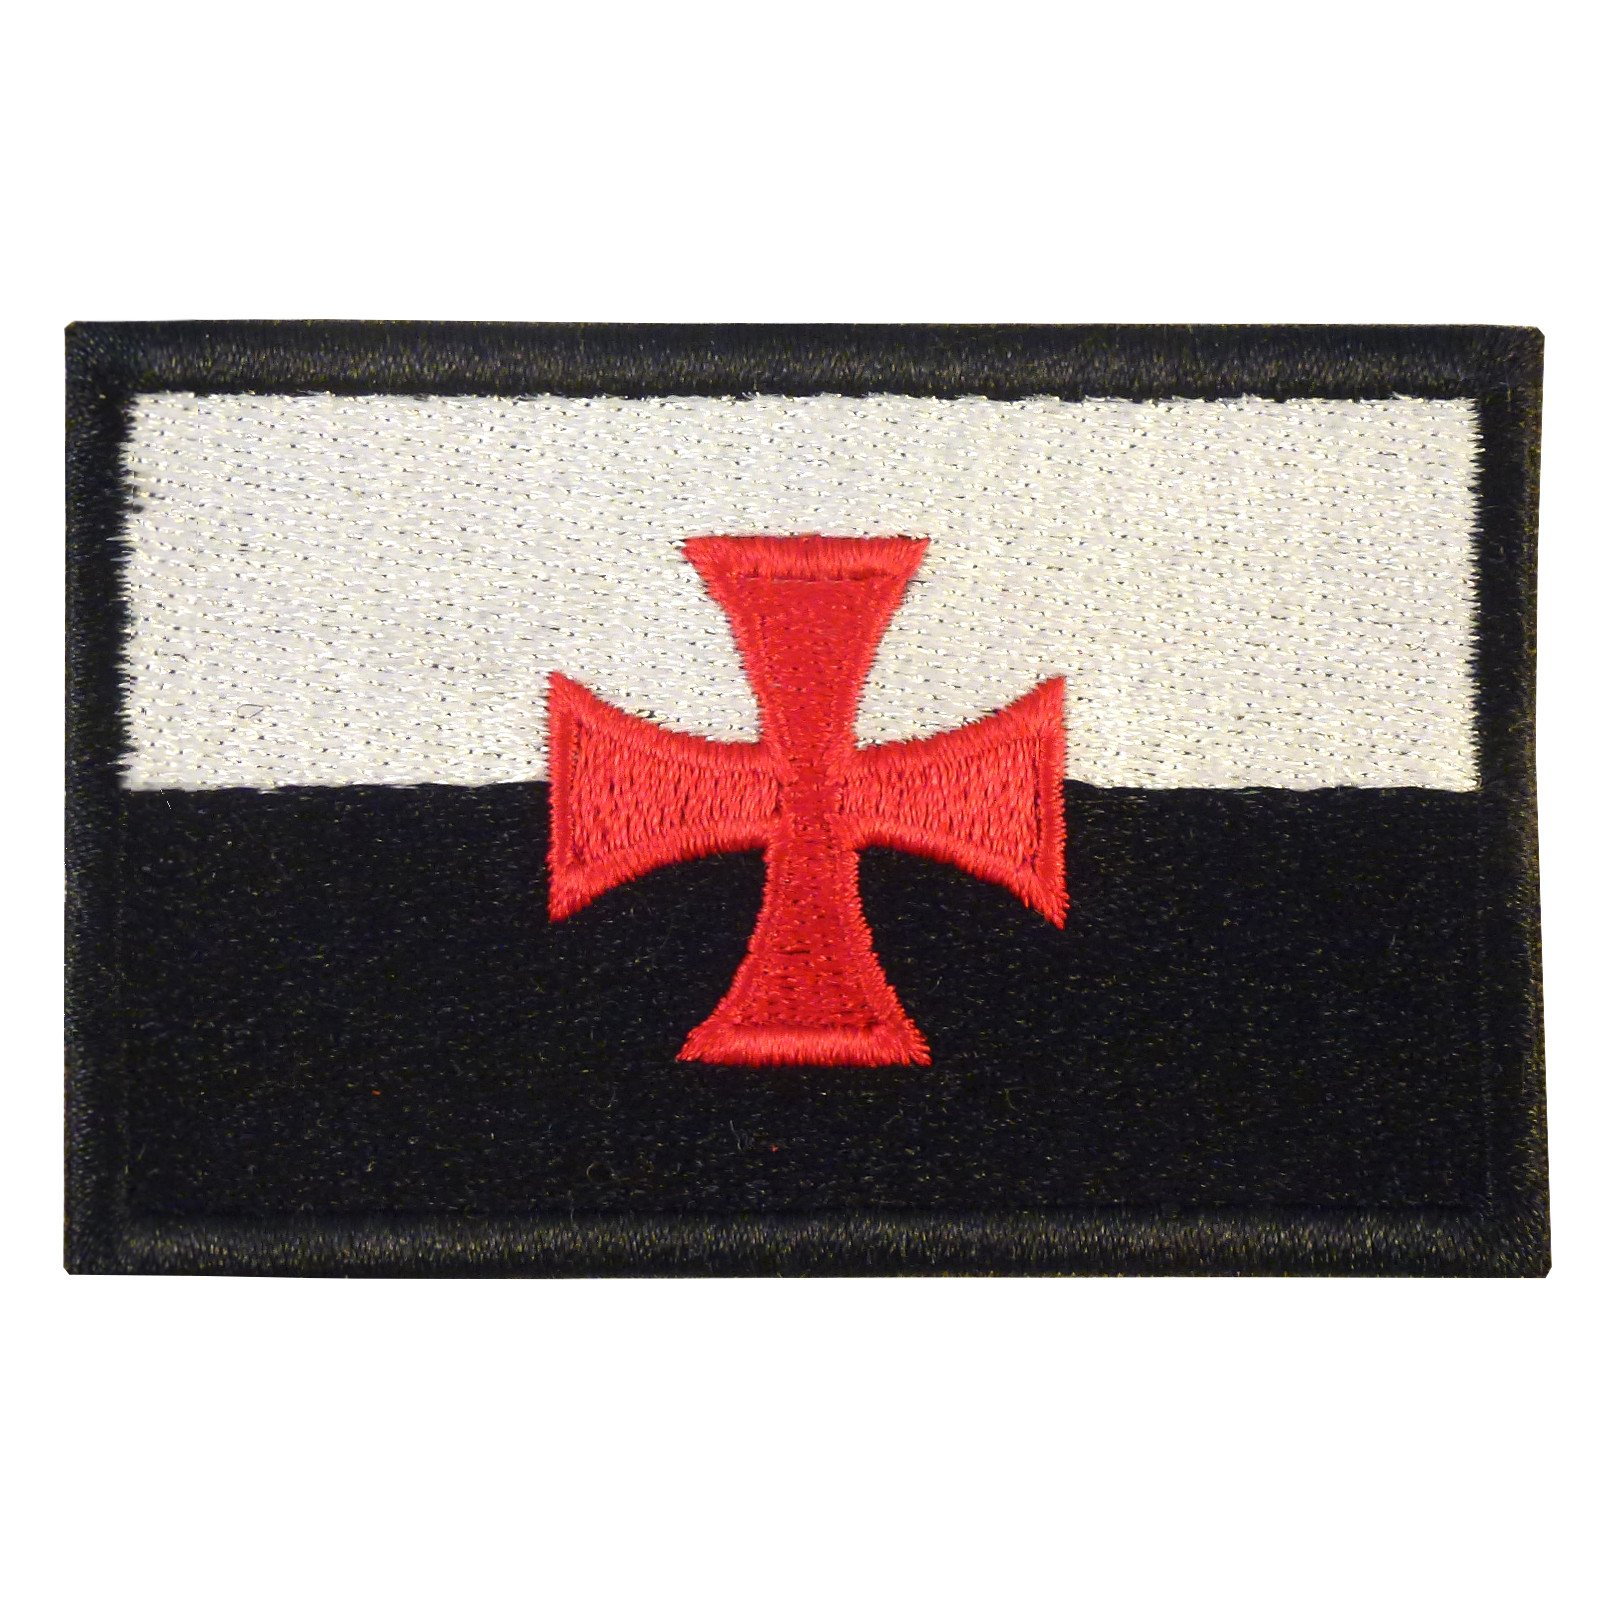 Knights Templar Cross Crusaders Tactical Morale Ricamata Ricamo Hook&Loop Toppa Patch